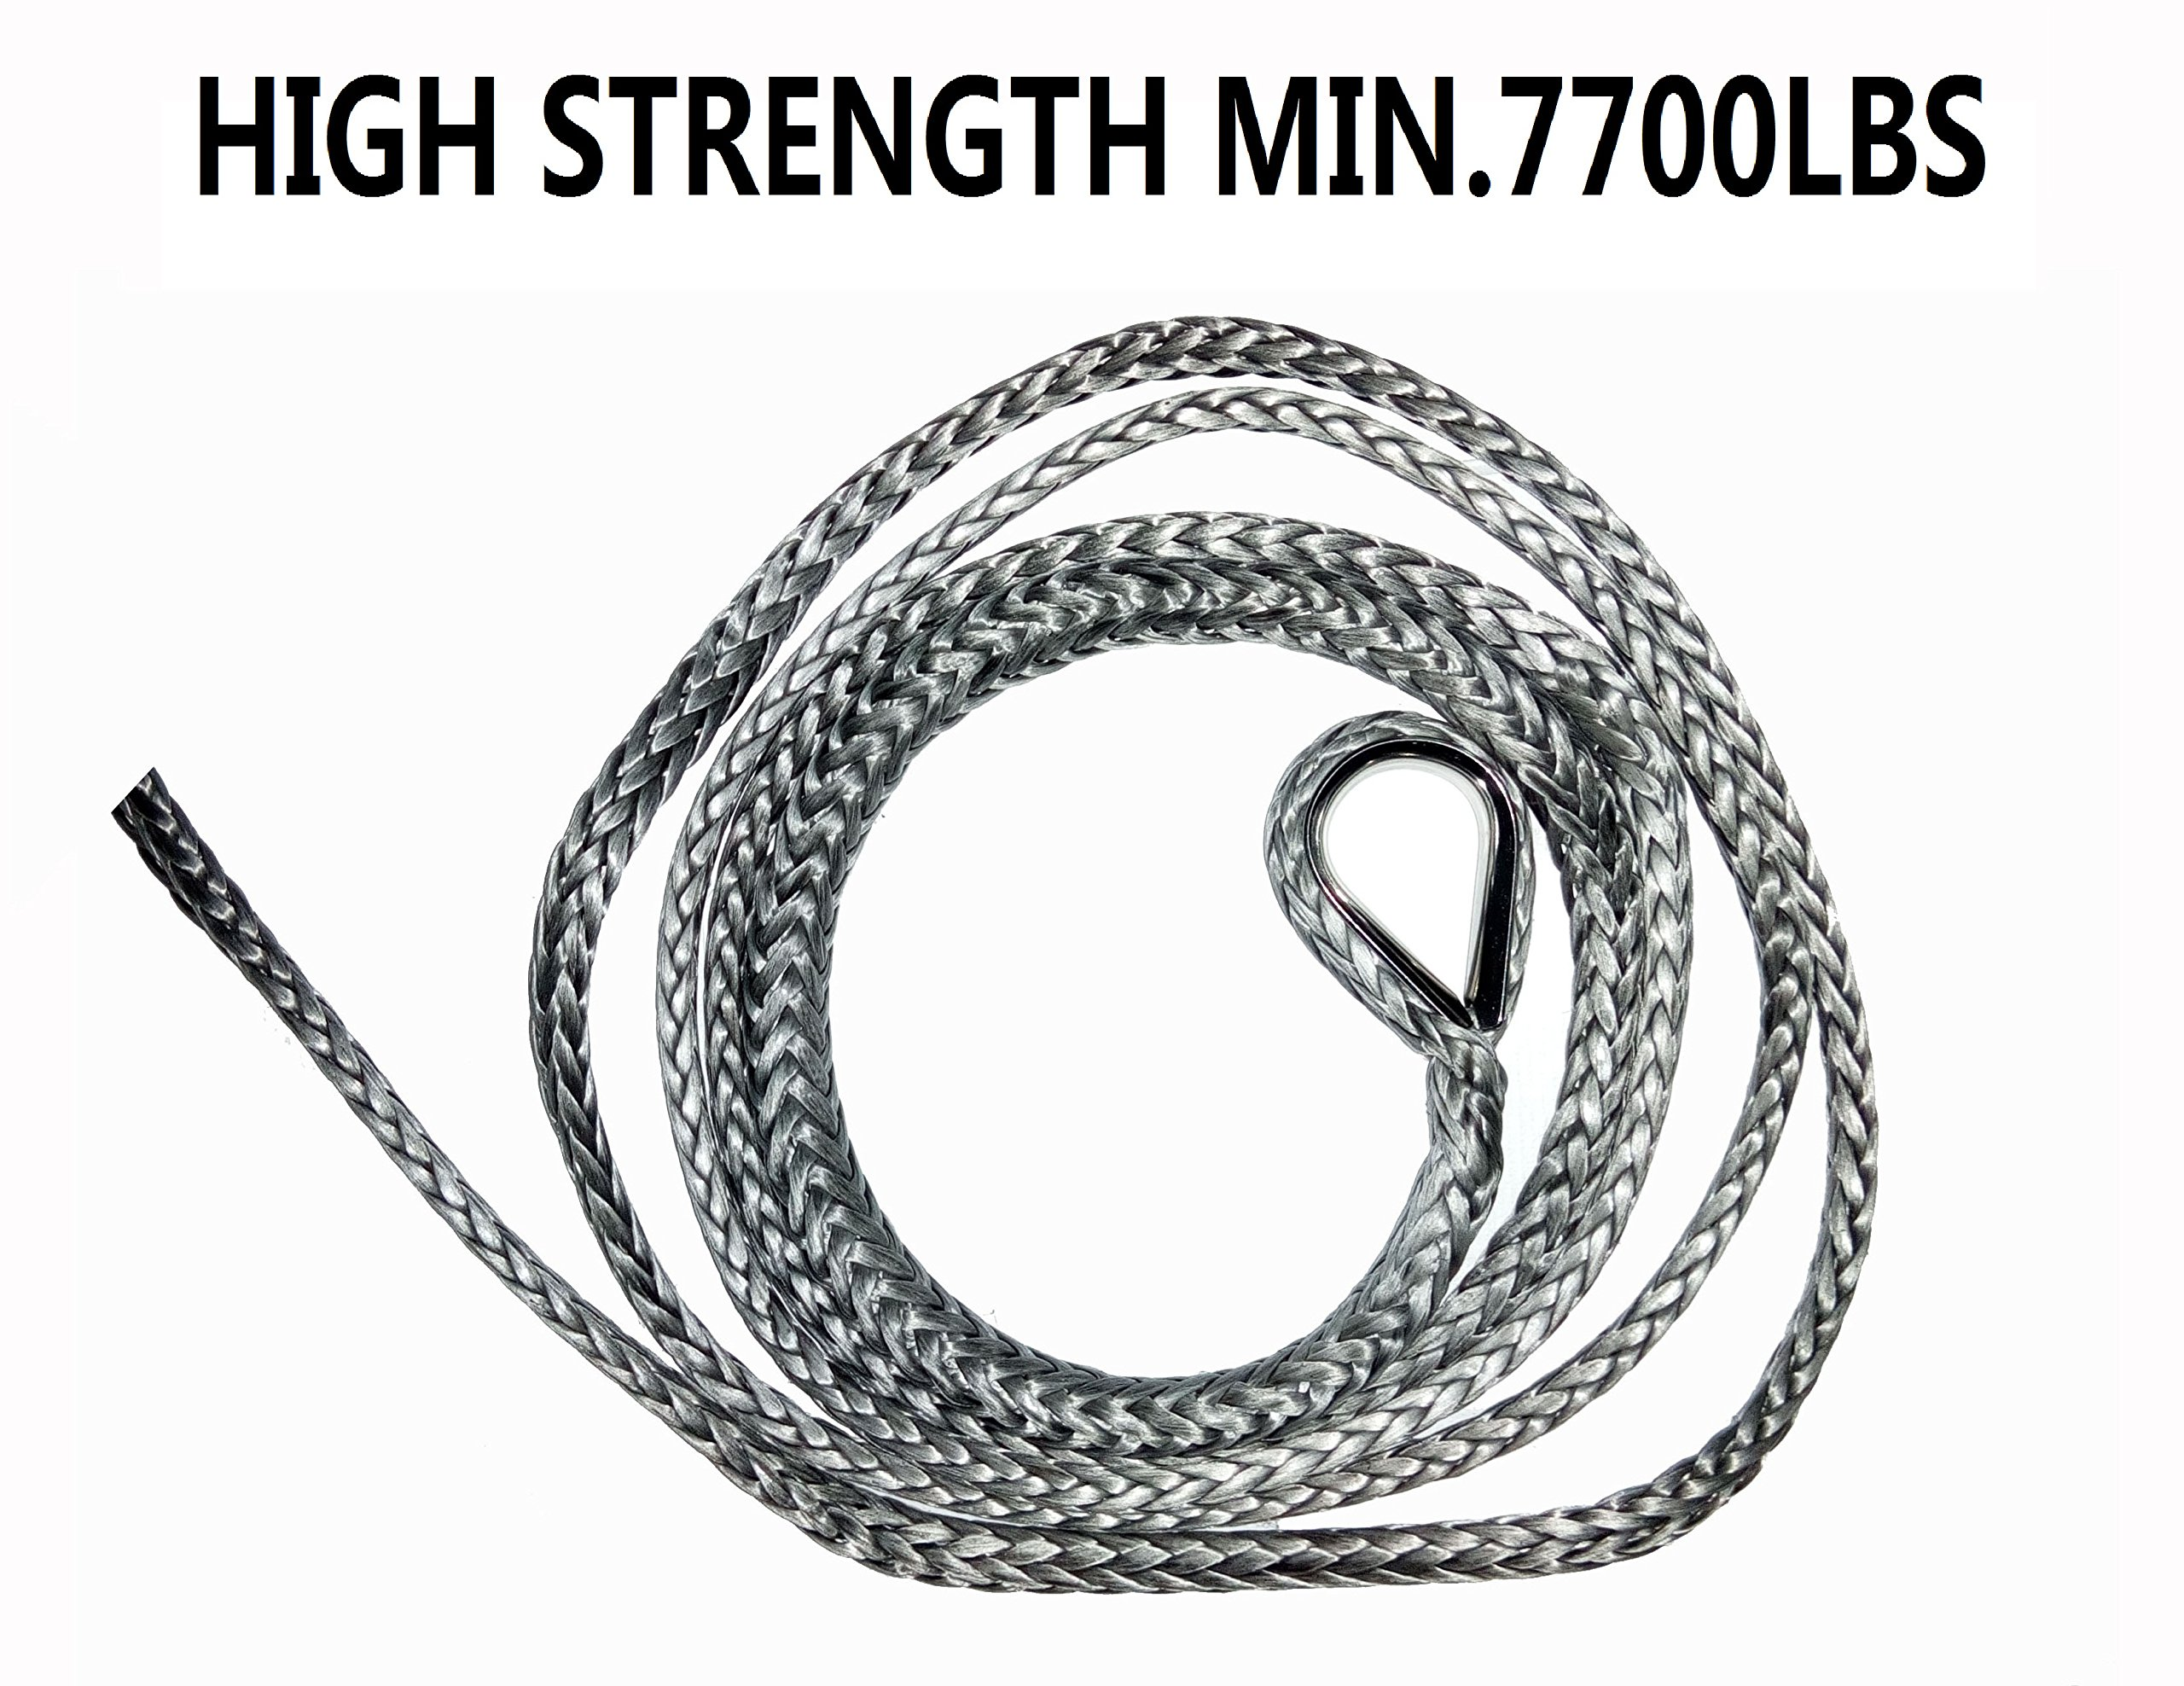 A-FUN Synthetic Plow Lift Rope 1/4'' 10' with 3 length option test report